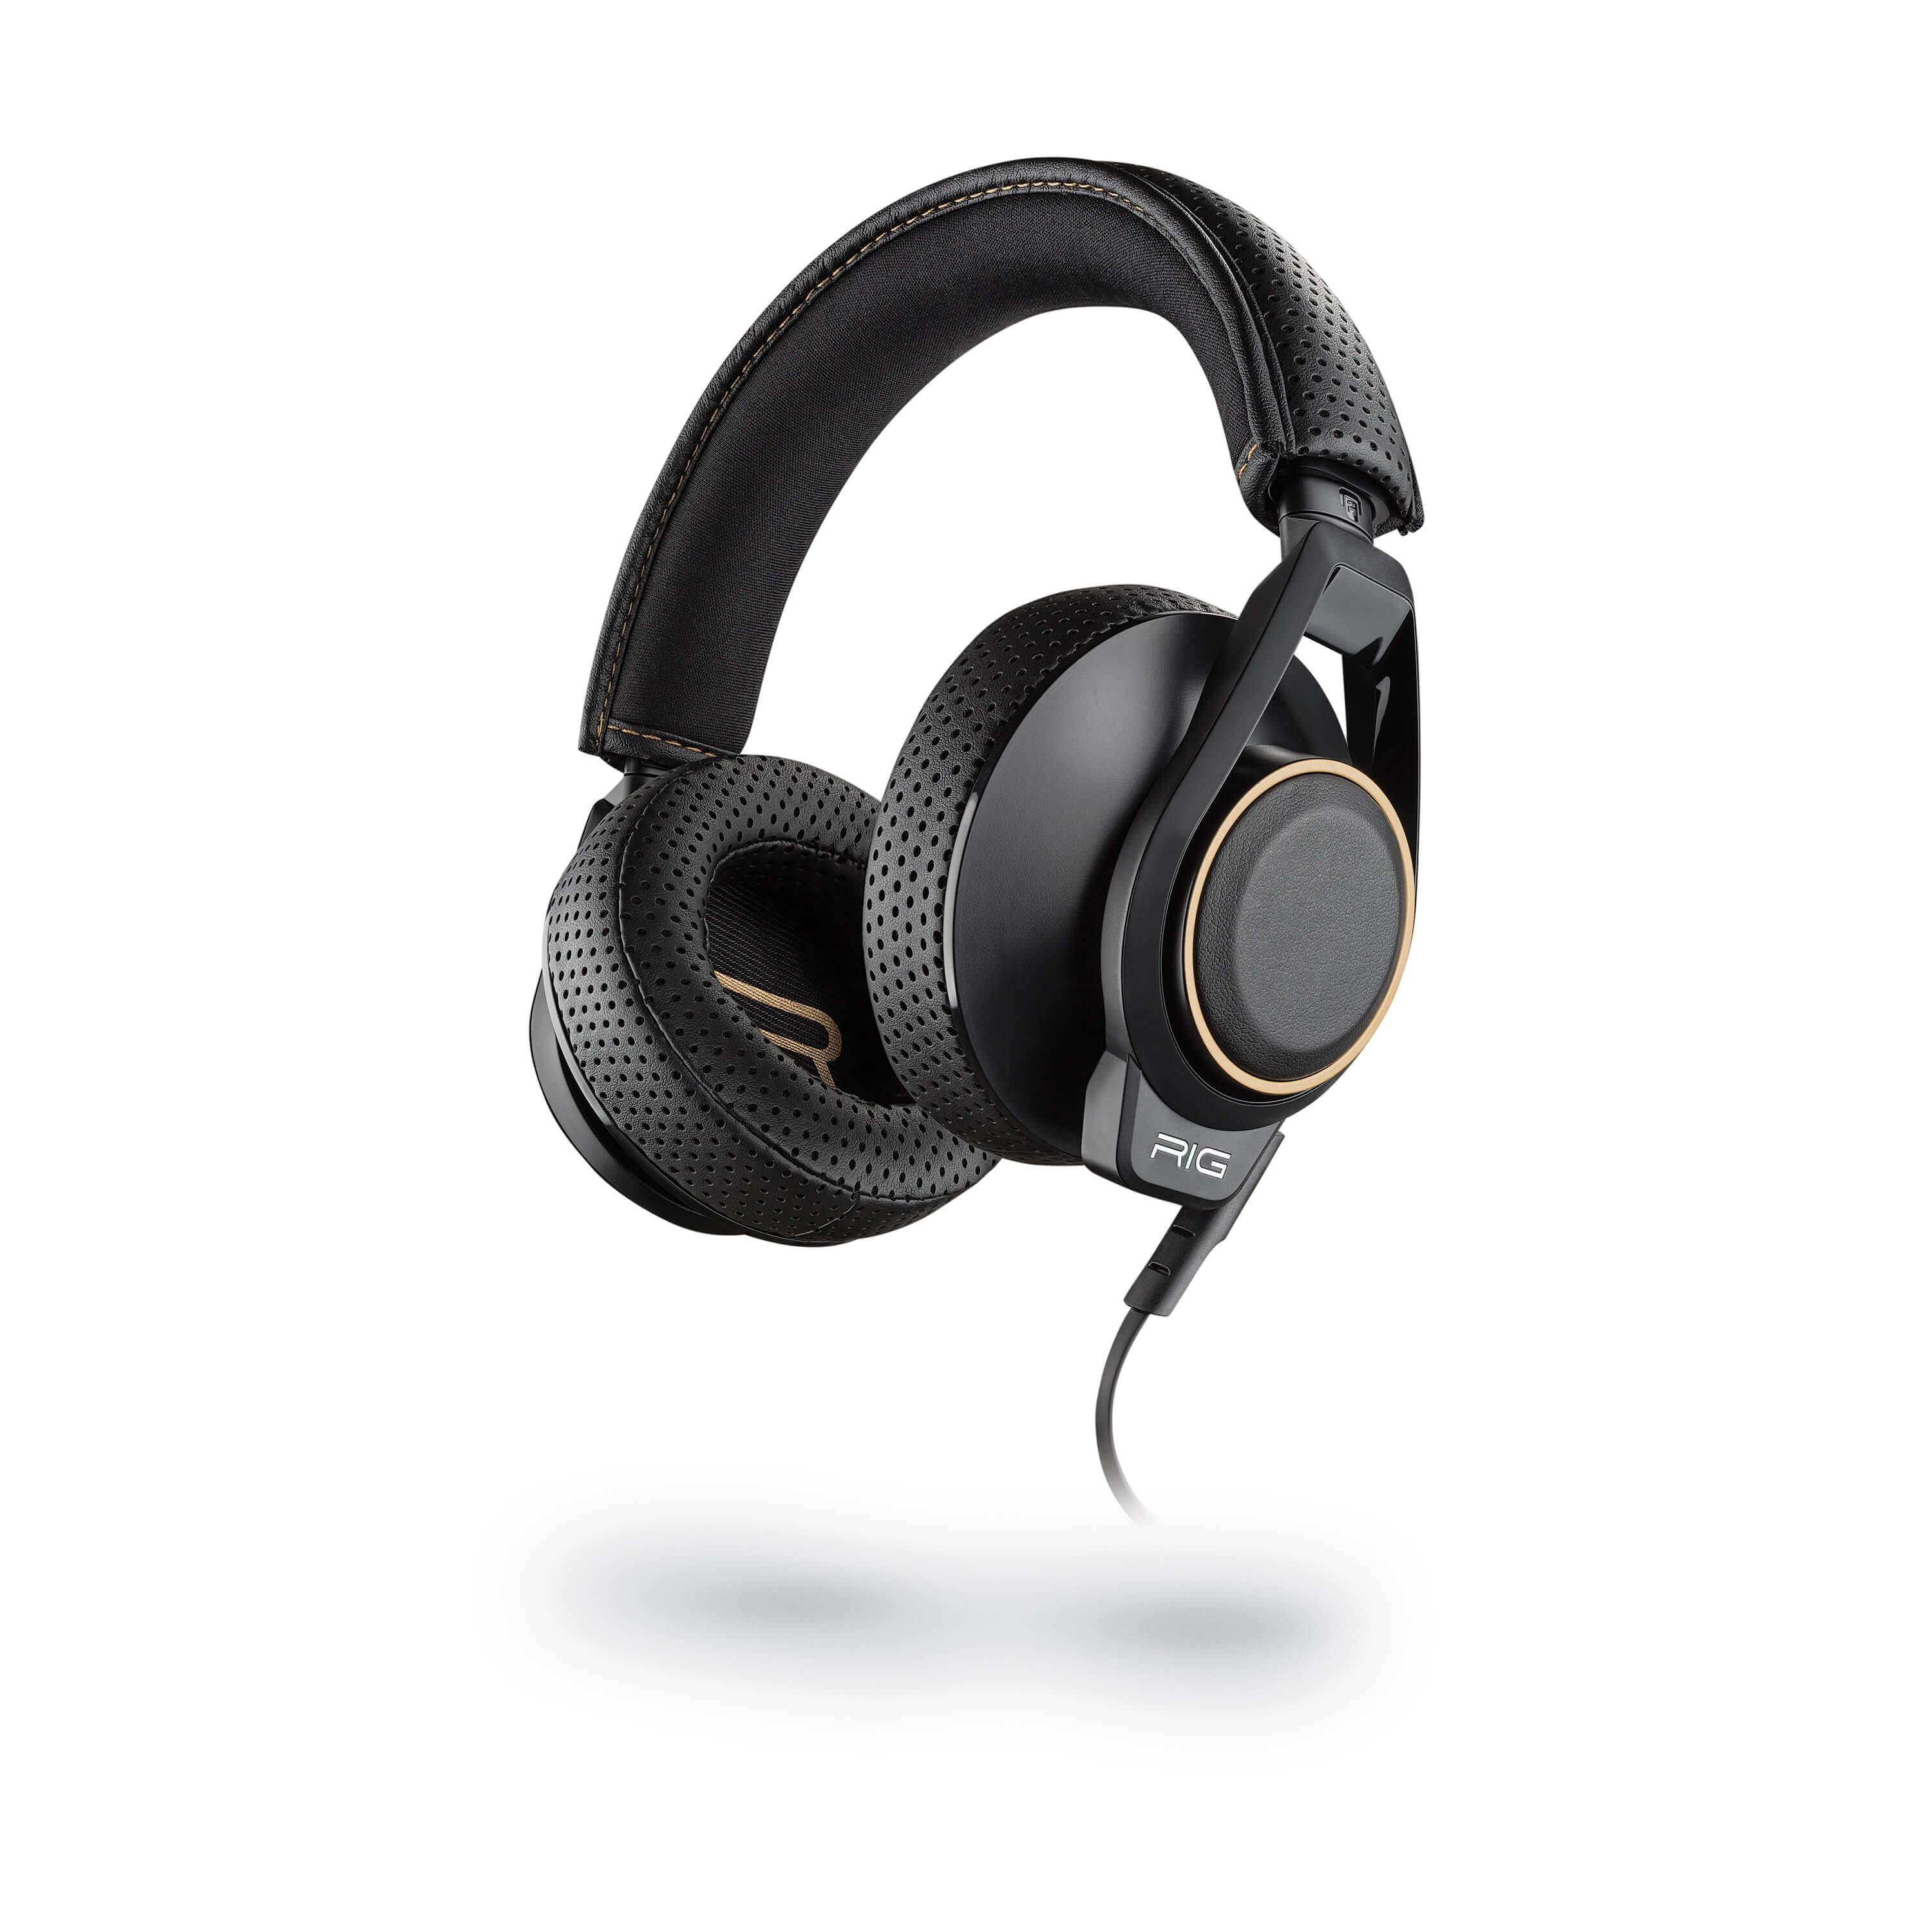 hjemmeudstyr Plantronics Gaming Headset Rig 600 Xbox/ps4/pc Sort